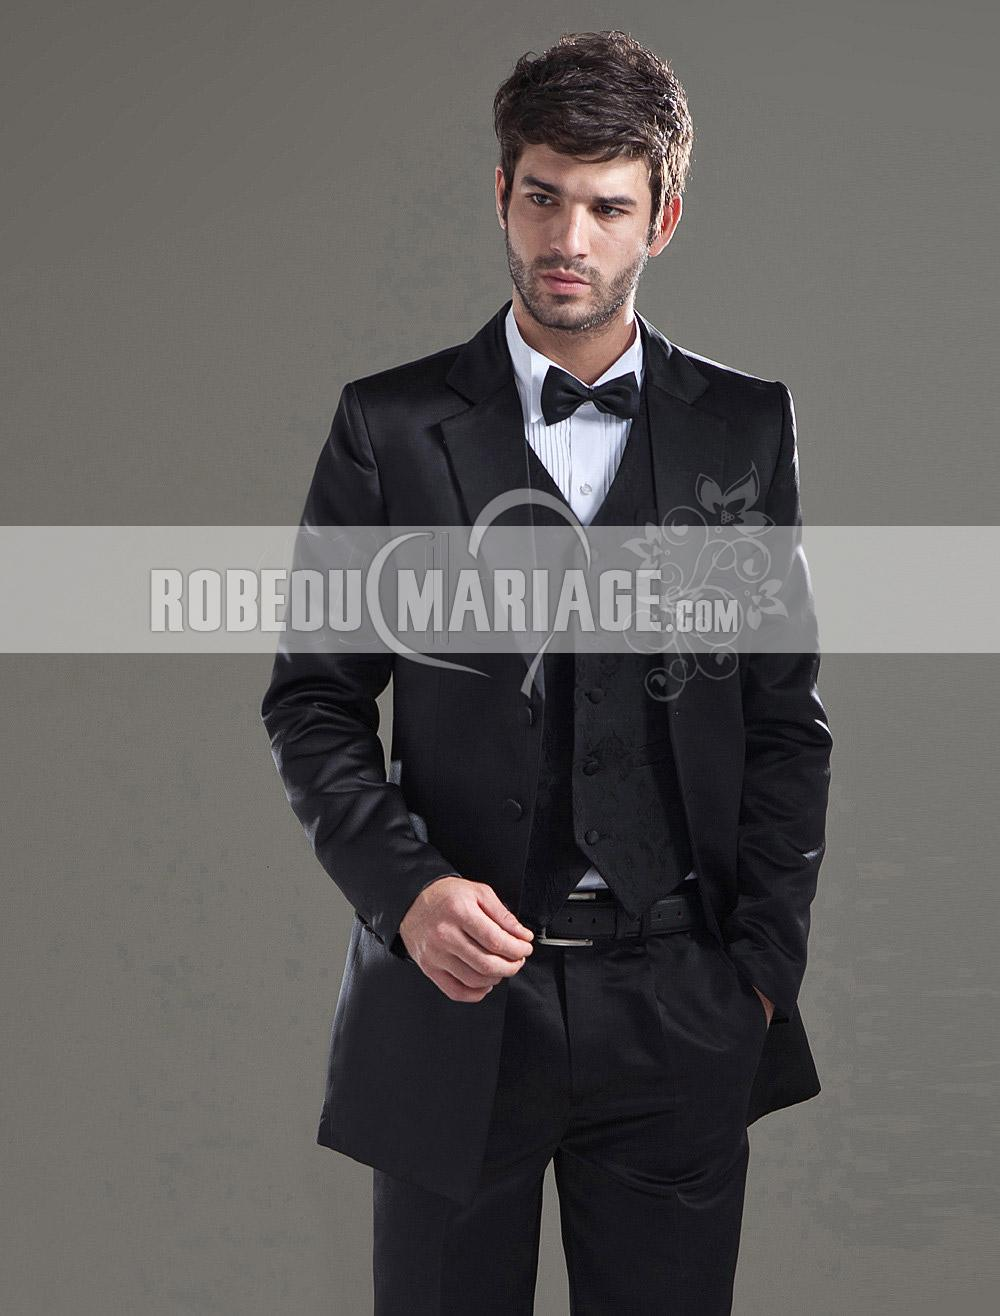 confortable costume pour mariage de style attrayant costume d 39 homme sur mesure robe207246. Black Bedroom Furniture Sets. Home Design Ideas